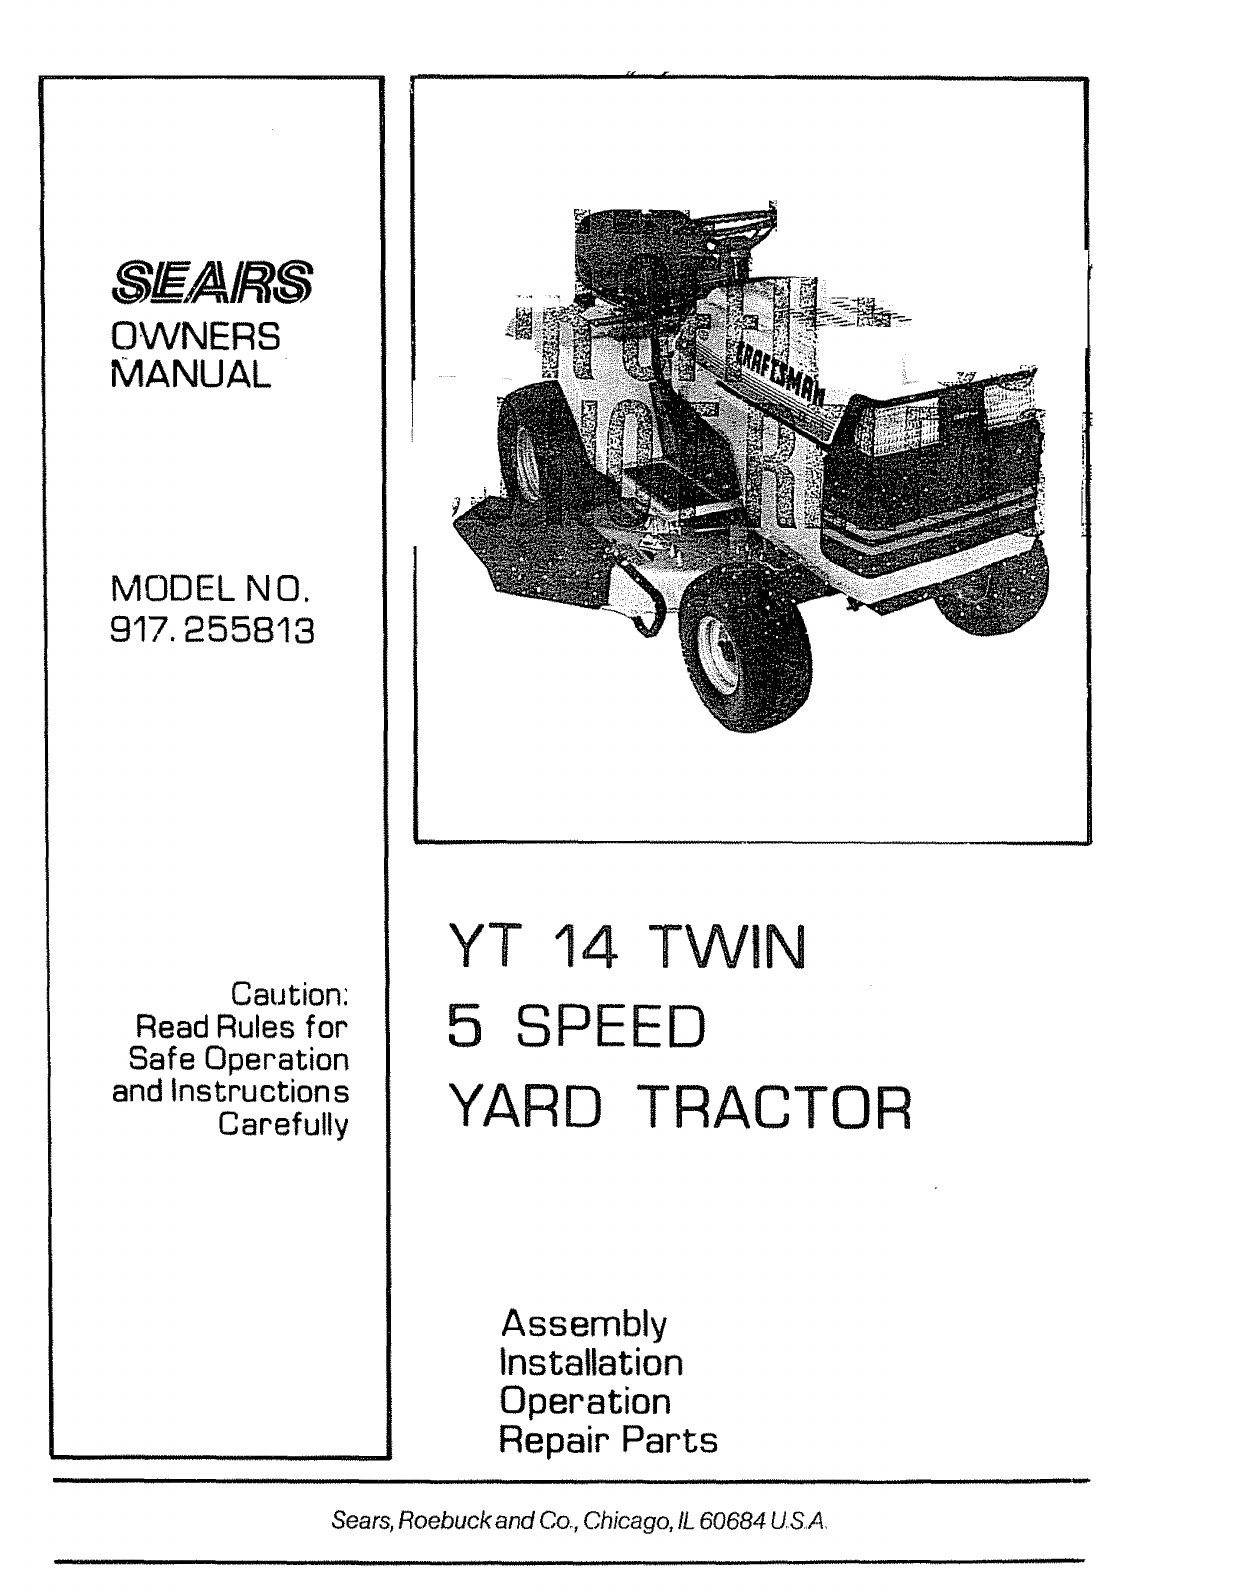 1986 Craftsman Yt Tractor Manual